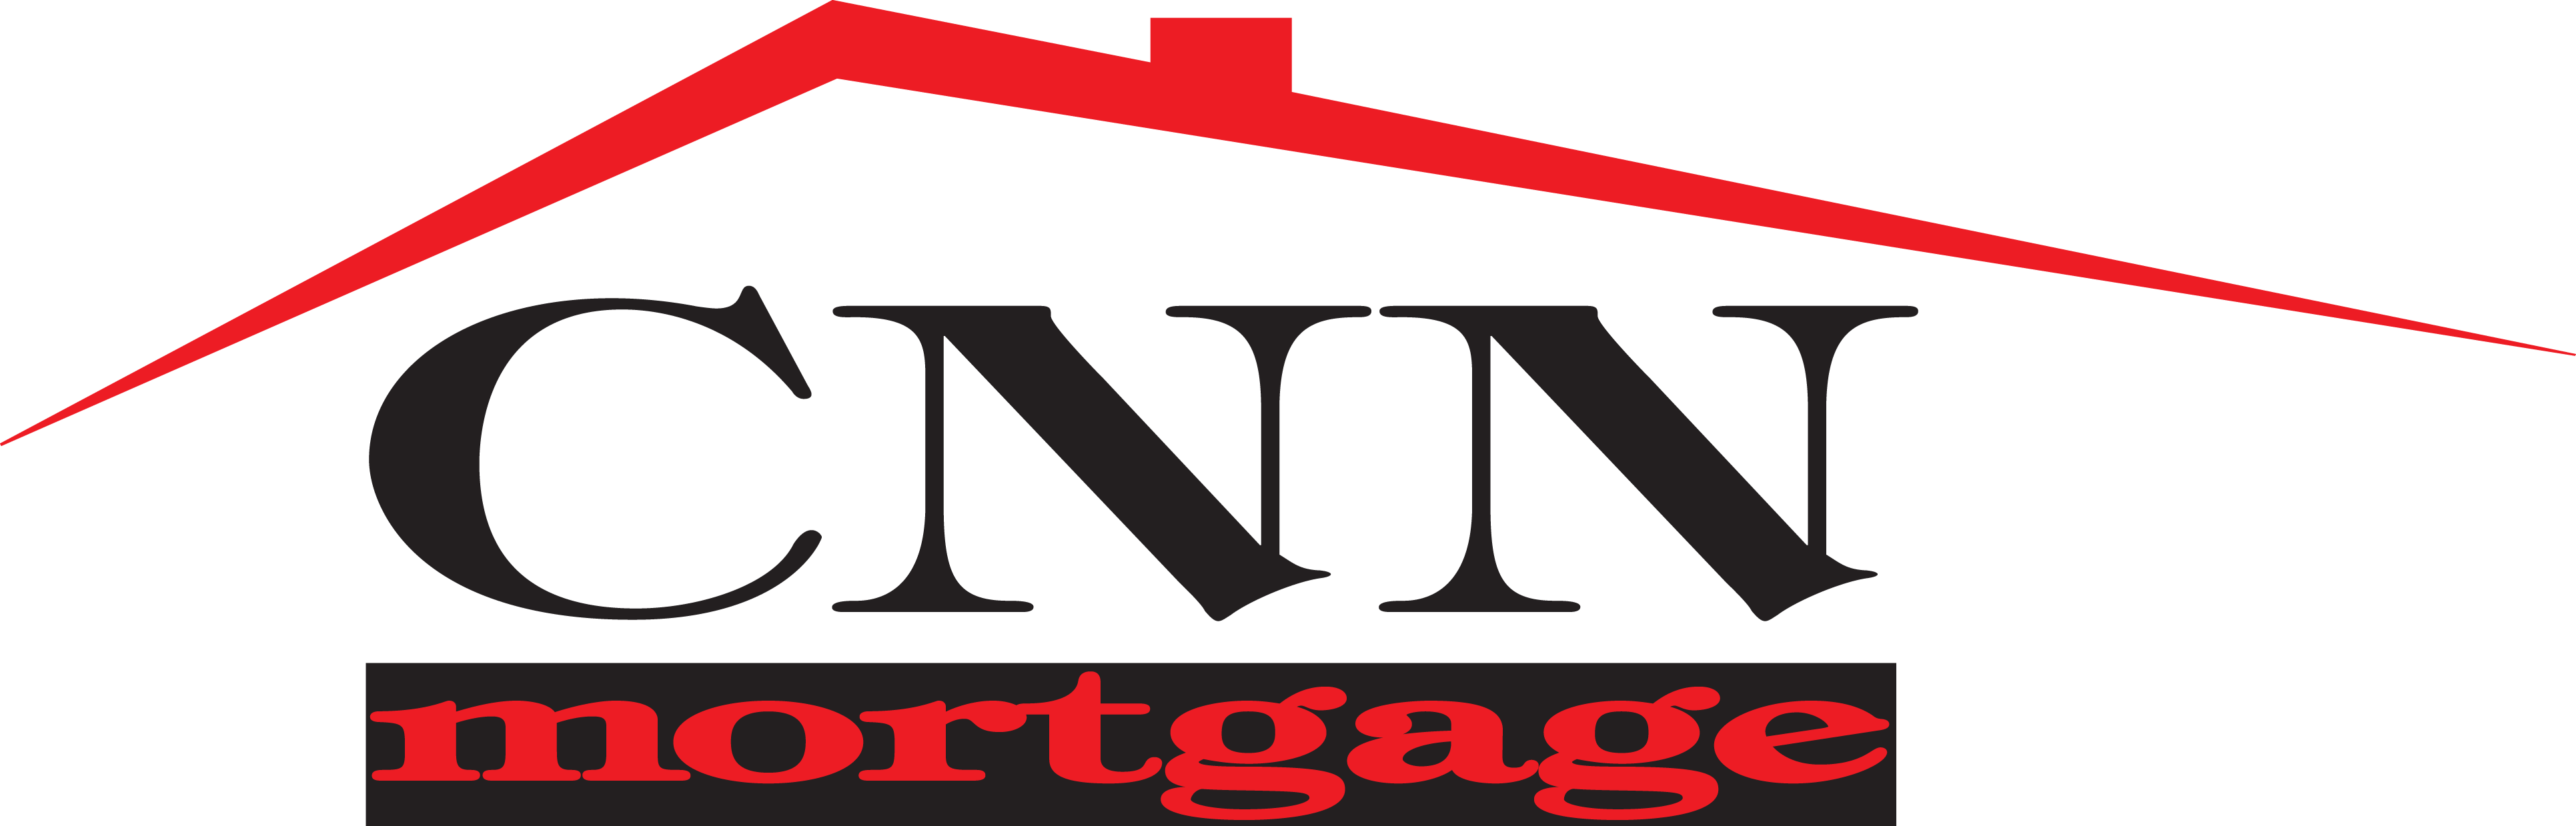 CNN Mortgage